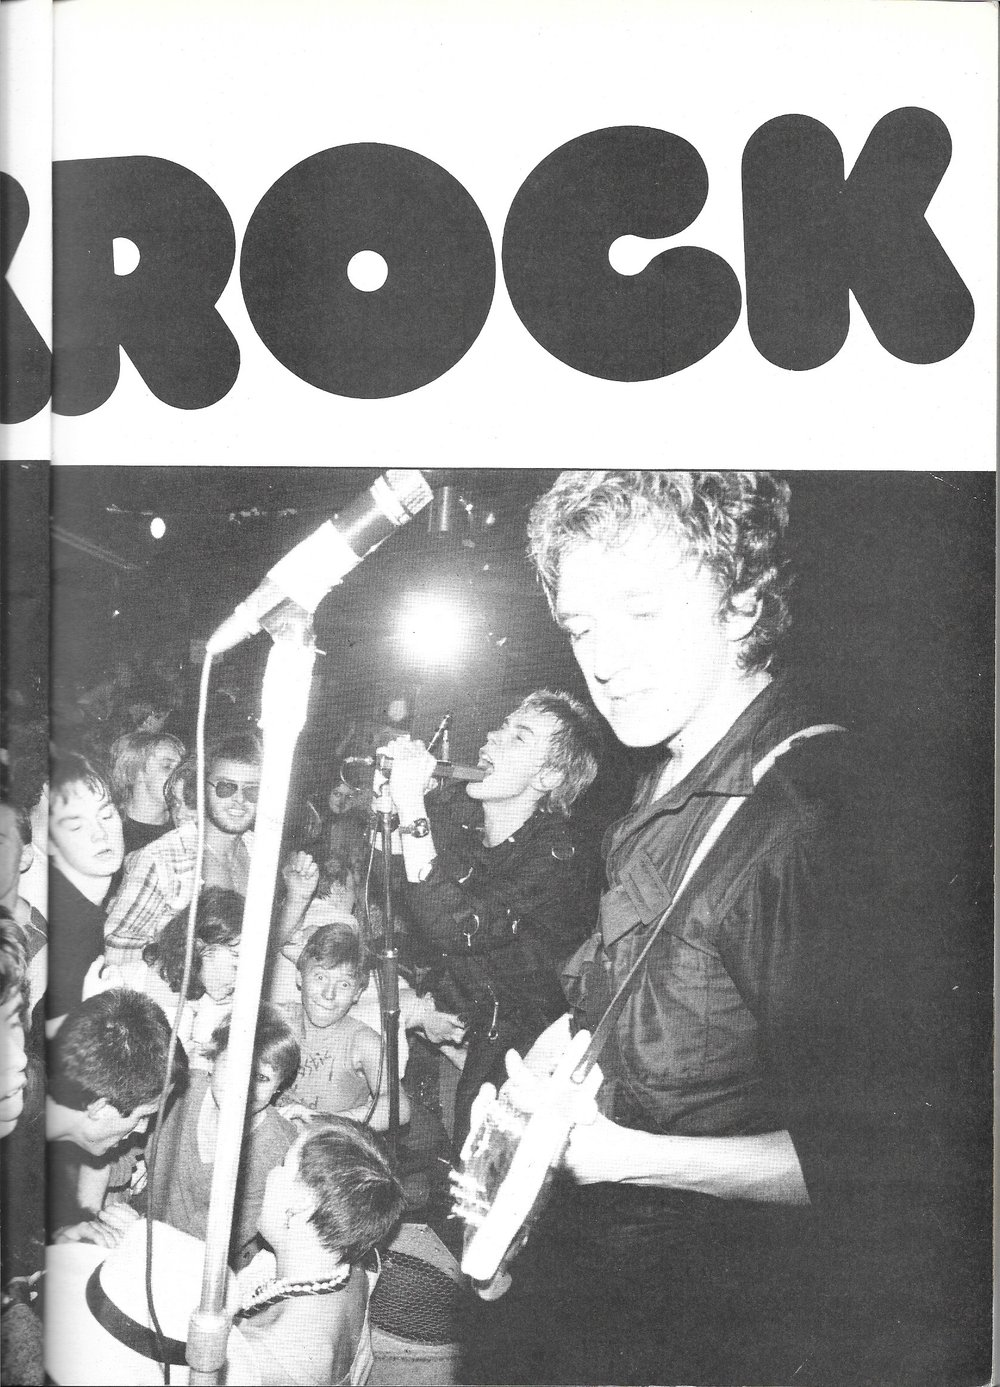 Punk Rock by VIrginia Boston 1978 - Index Page right - US Version.jpg